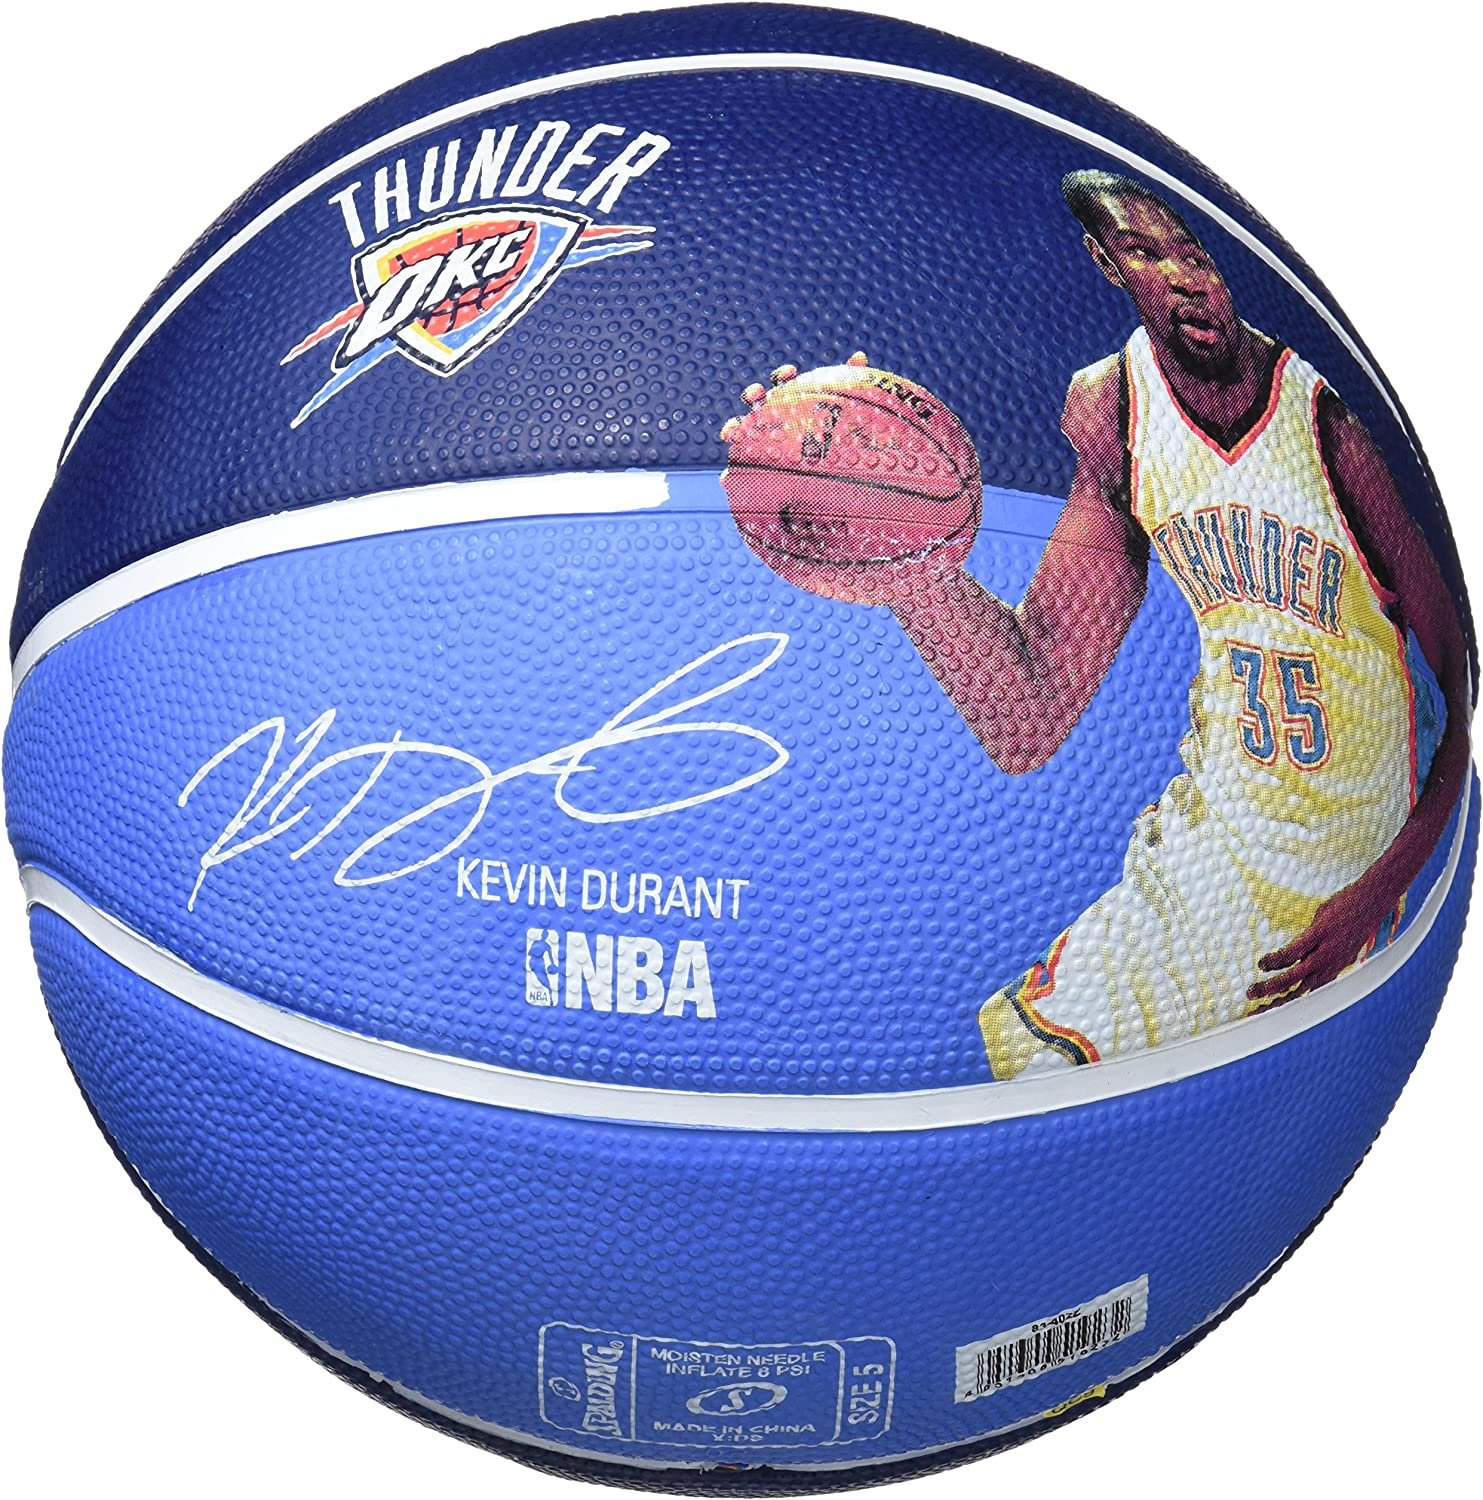 Spalding NBA Player Kevin Durant SZ. Balones de Baloncesto: Amazon ...